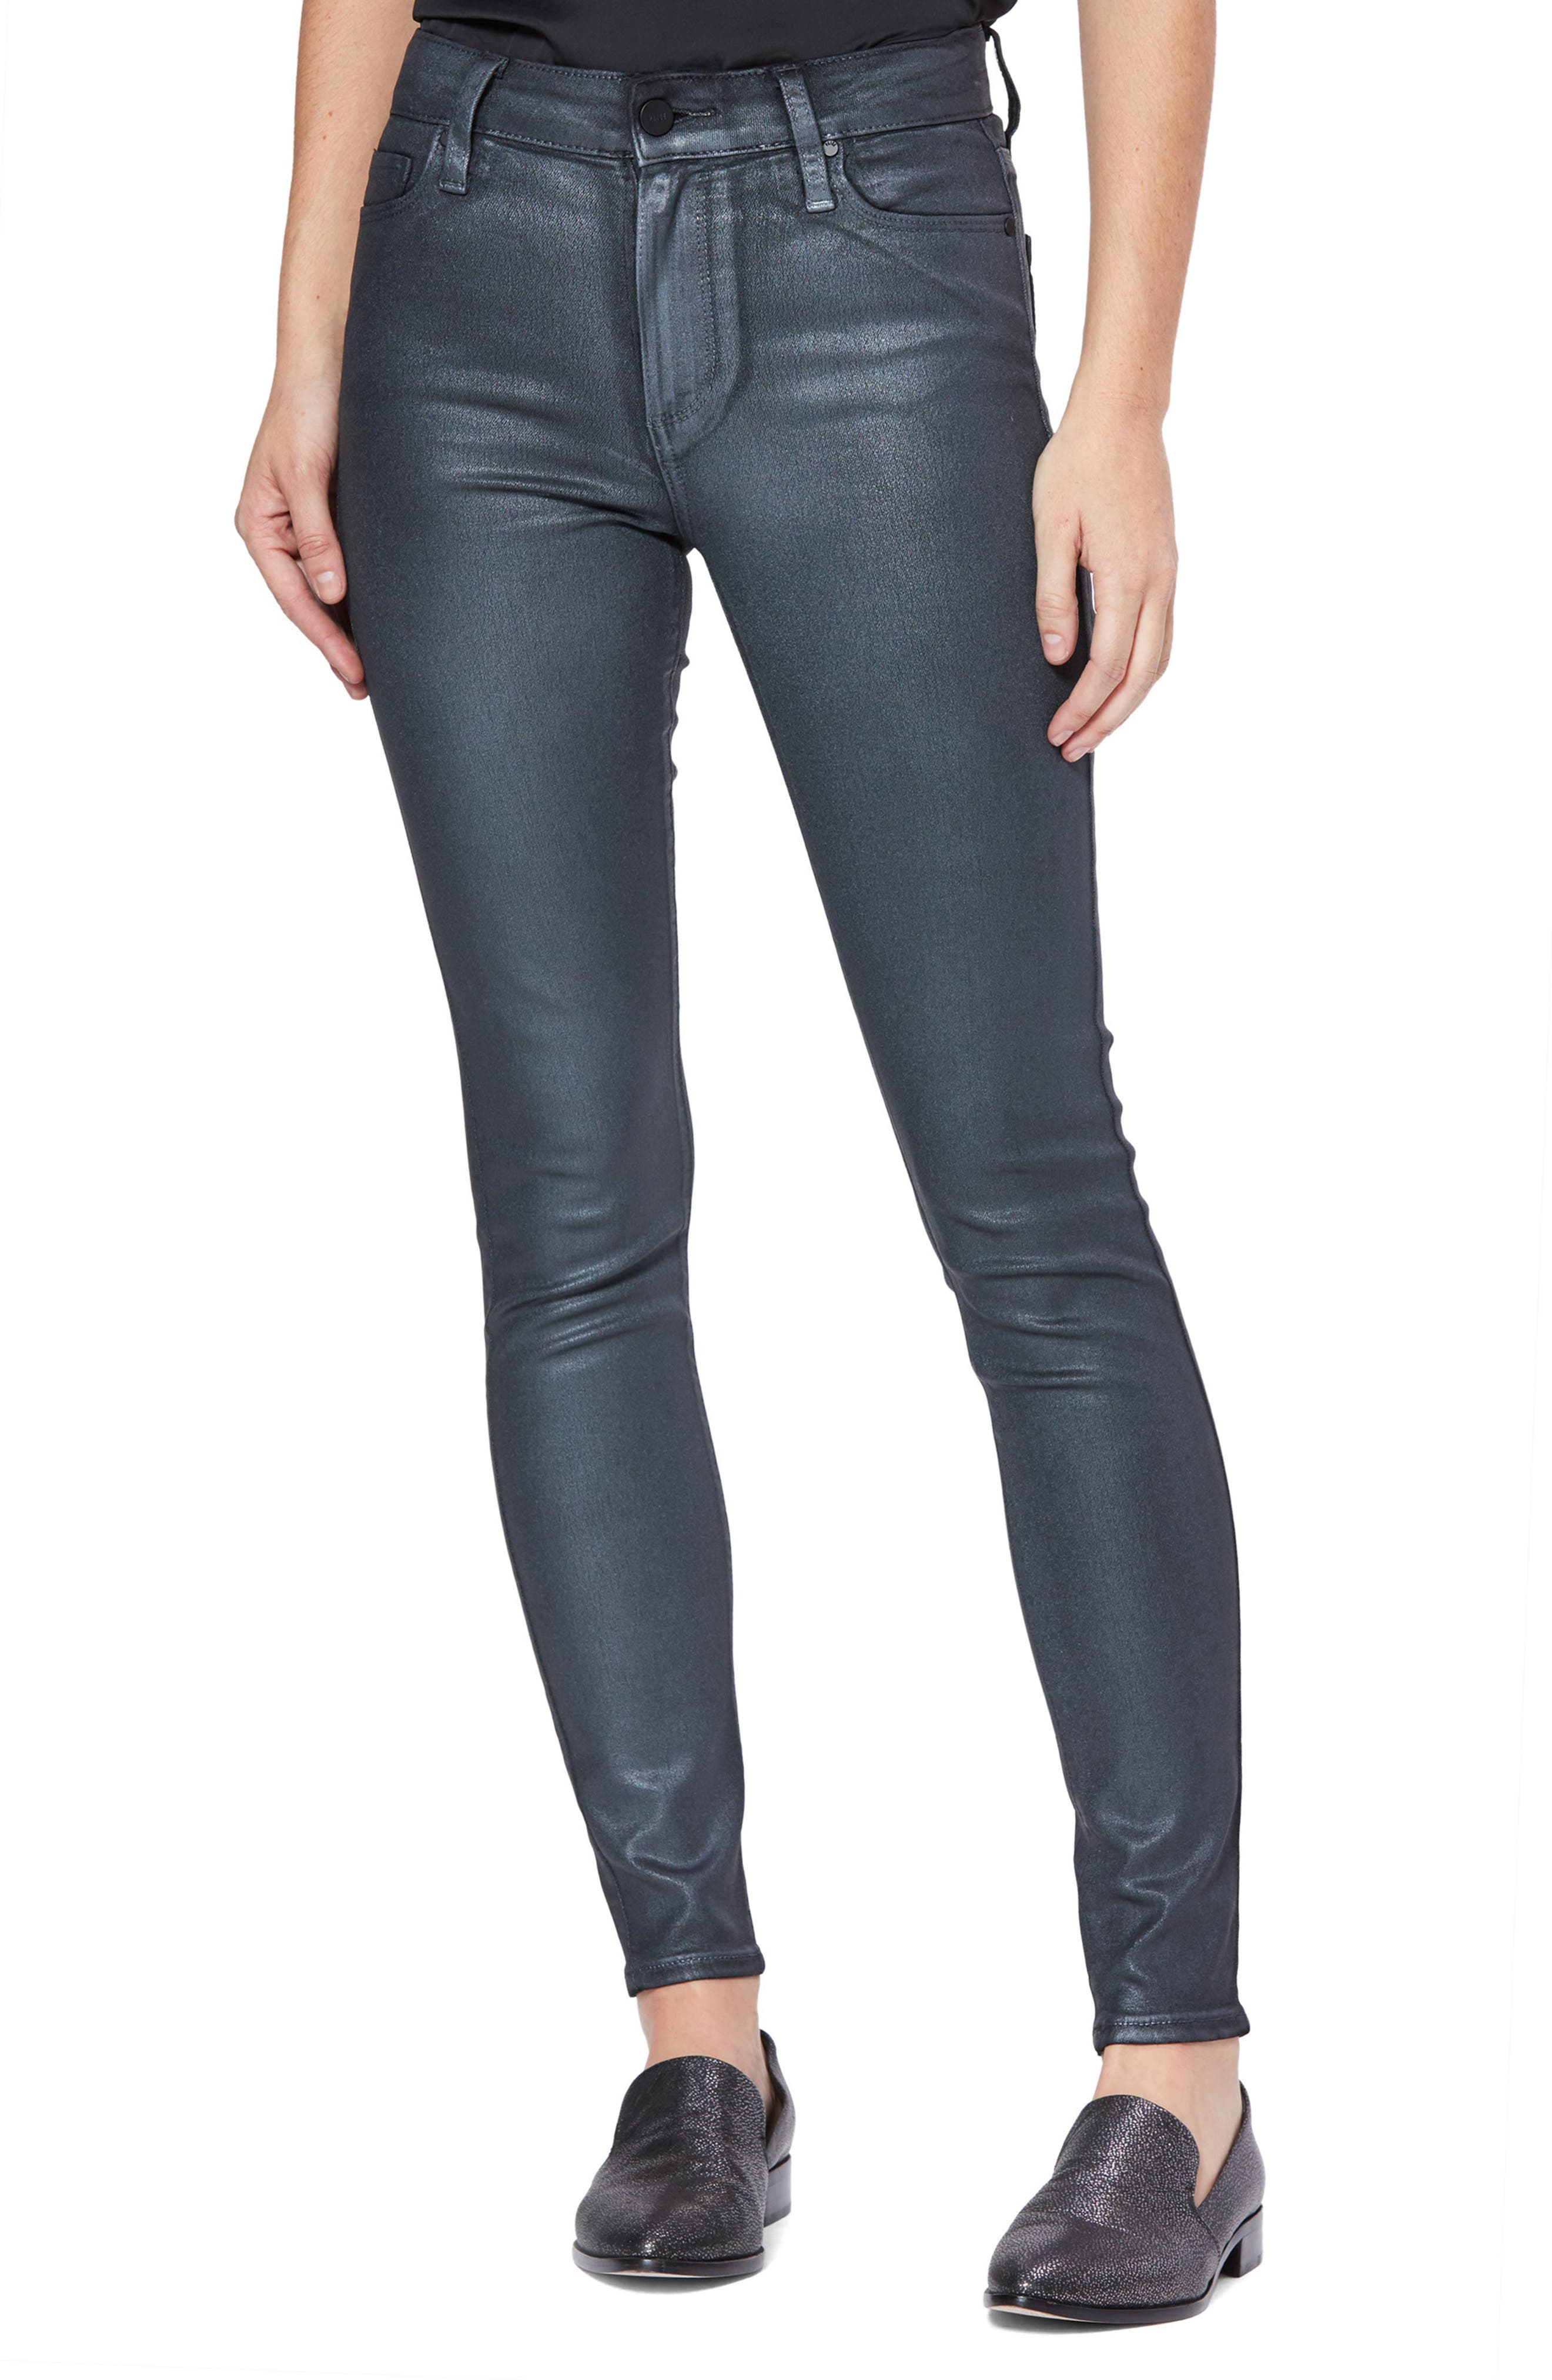 Image of PAIGE Transcend Hoxton High Waist Coated Skinny Jeans